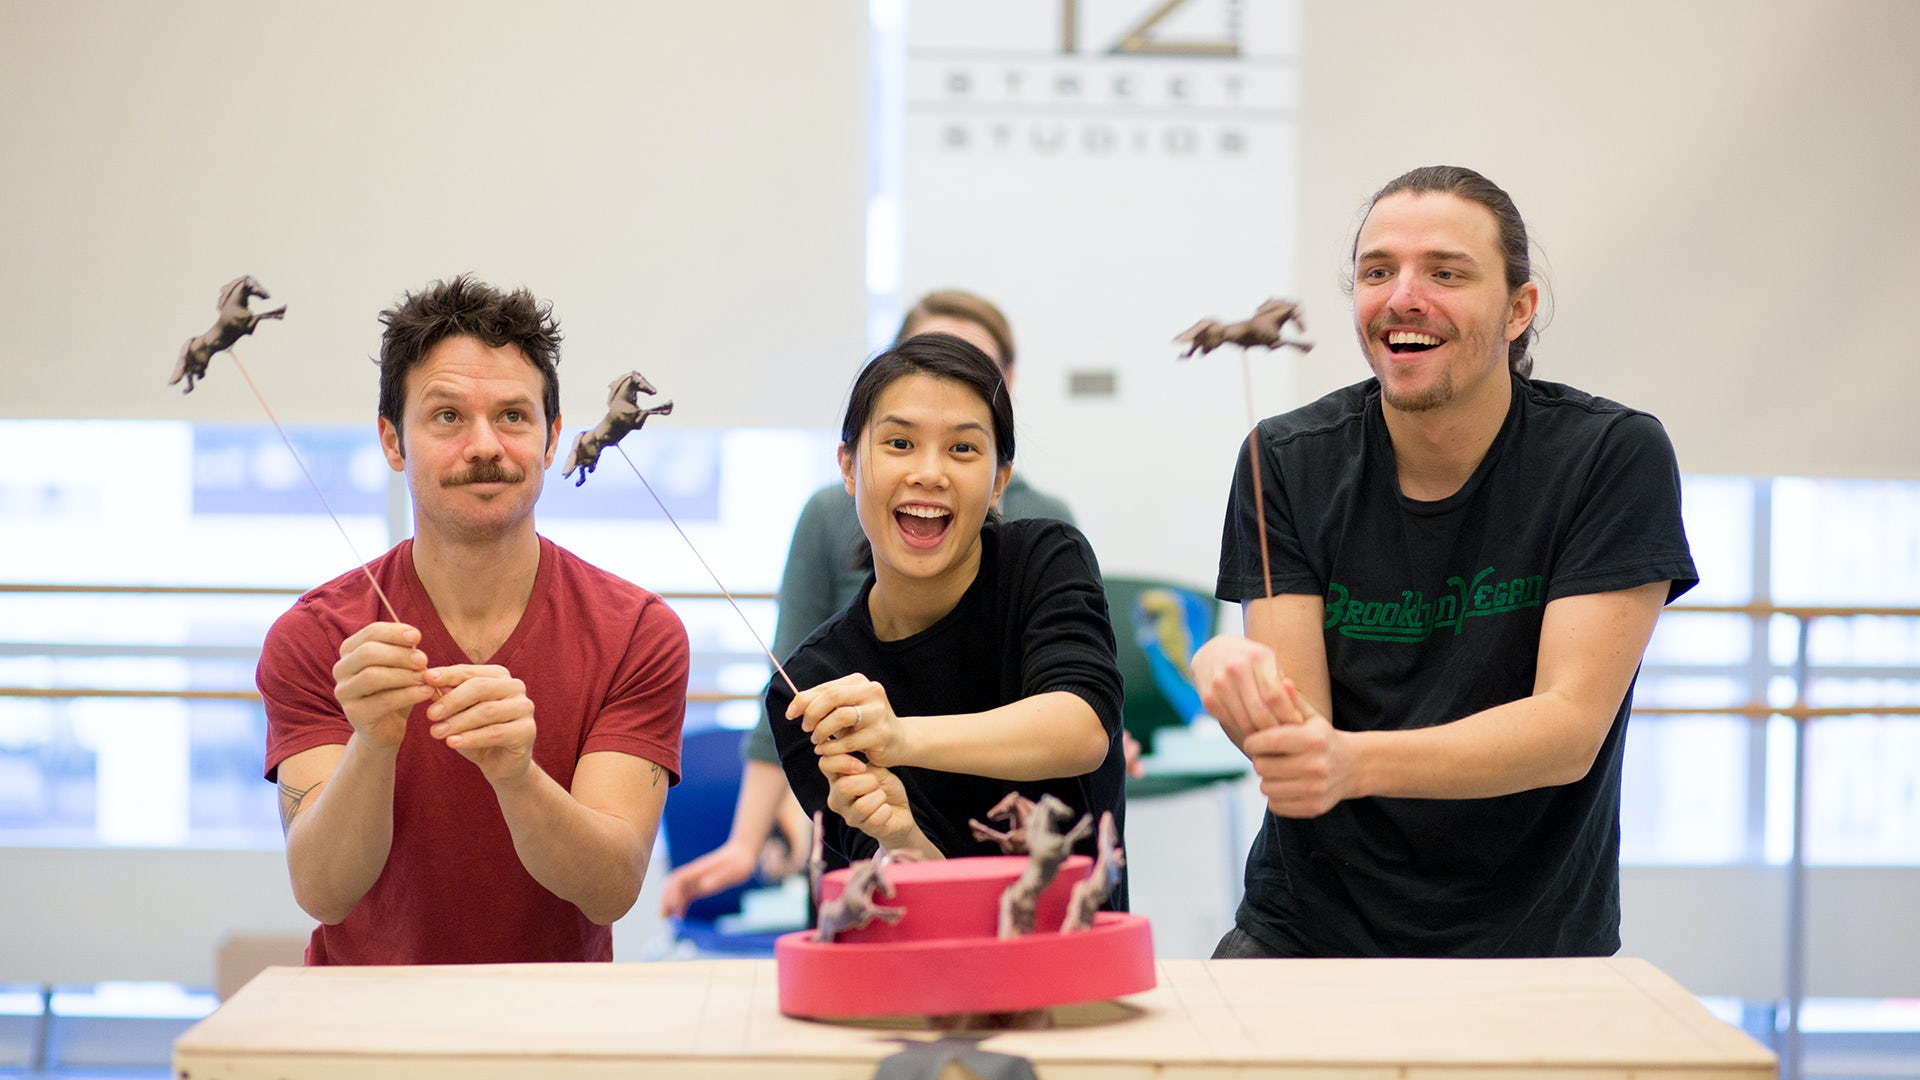 Three actors operate toy horse rod puppets in a scene from the LabWorks project, Horsetale.